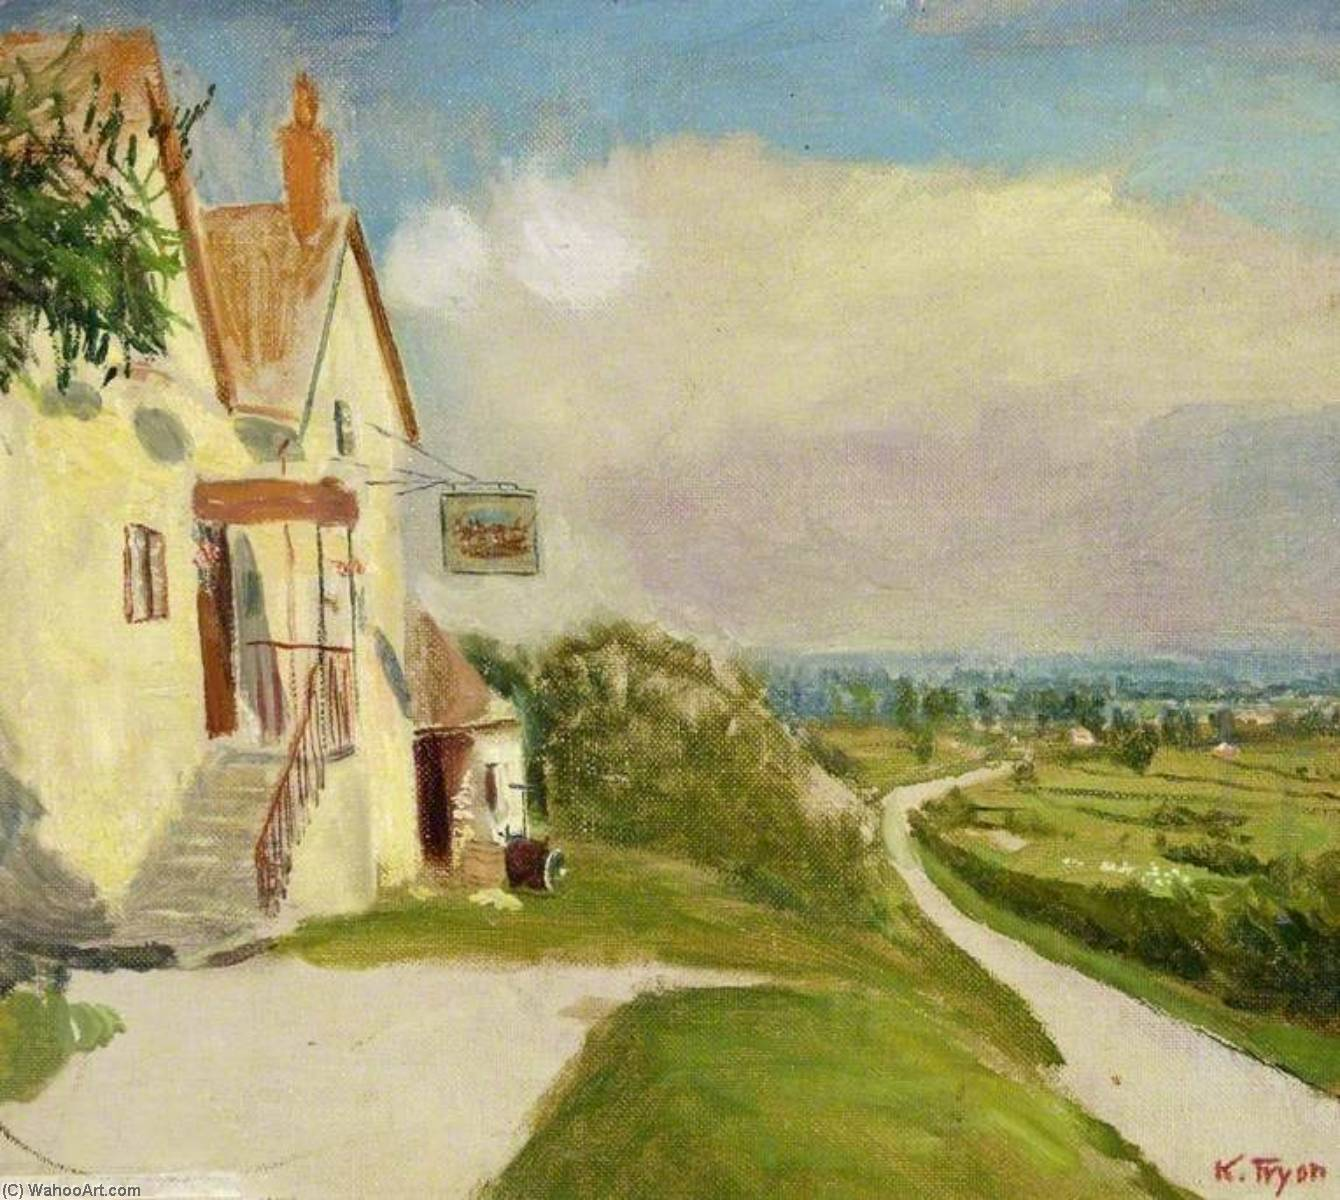 The `Plough Inn`, Chiseldon, Wiltshire, 1910 by Kate Allen Tryon | Museum Art Reproductions Kate Allen Tryon | WahooArt.com